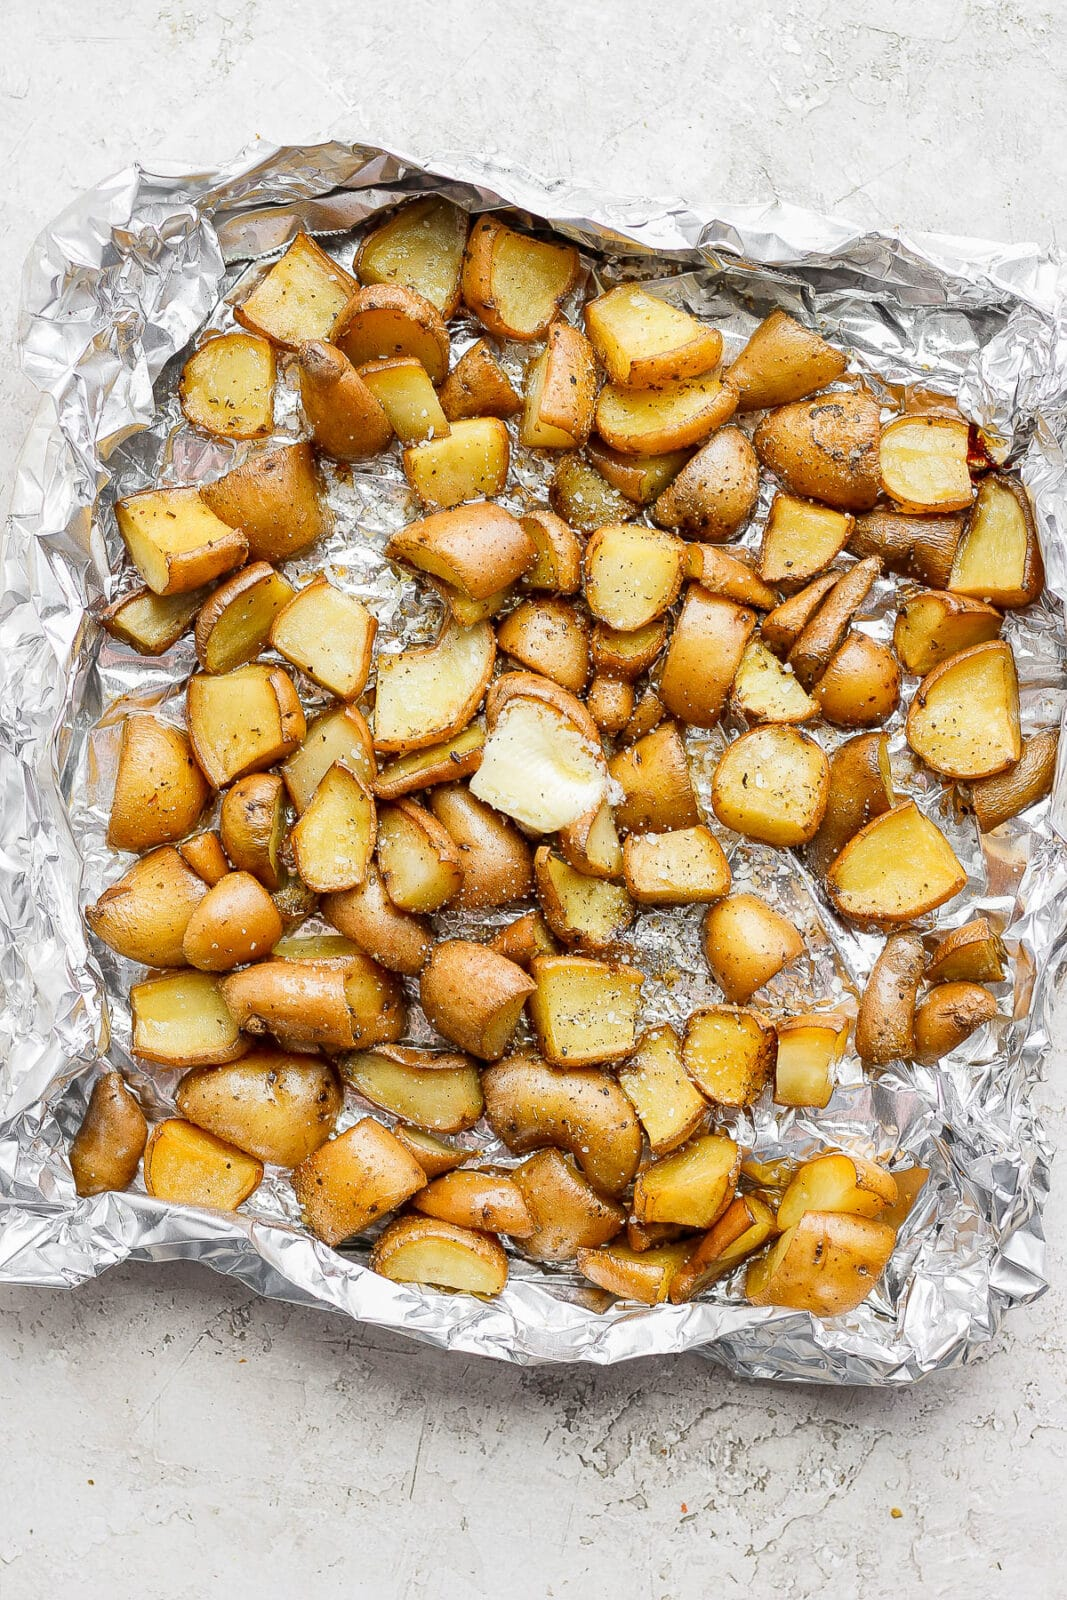 Cubed potatoes in an aluminum foil boat after smoking.